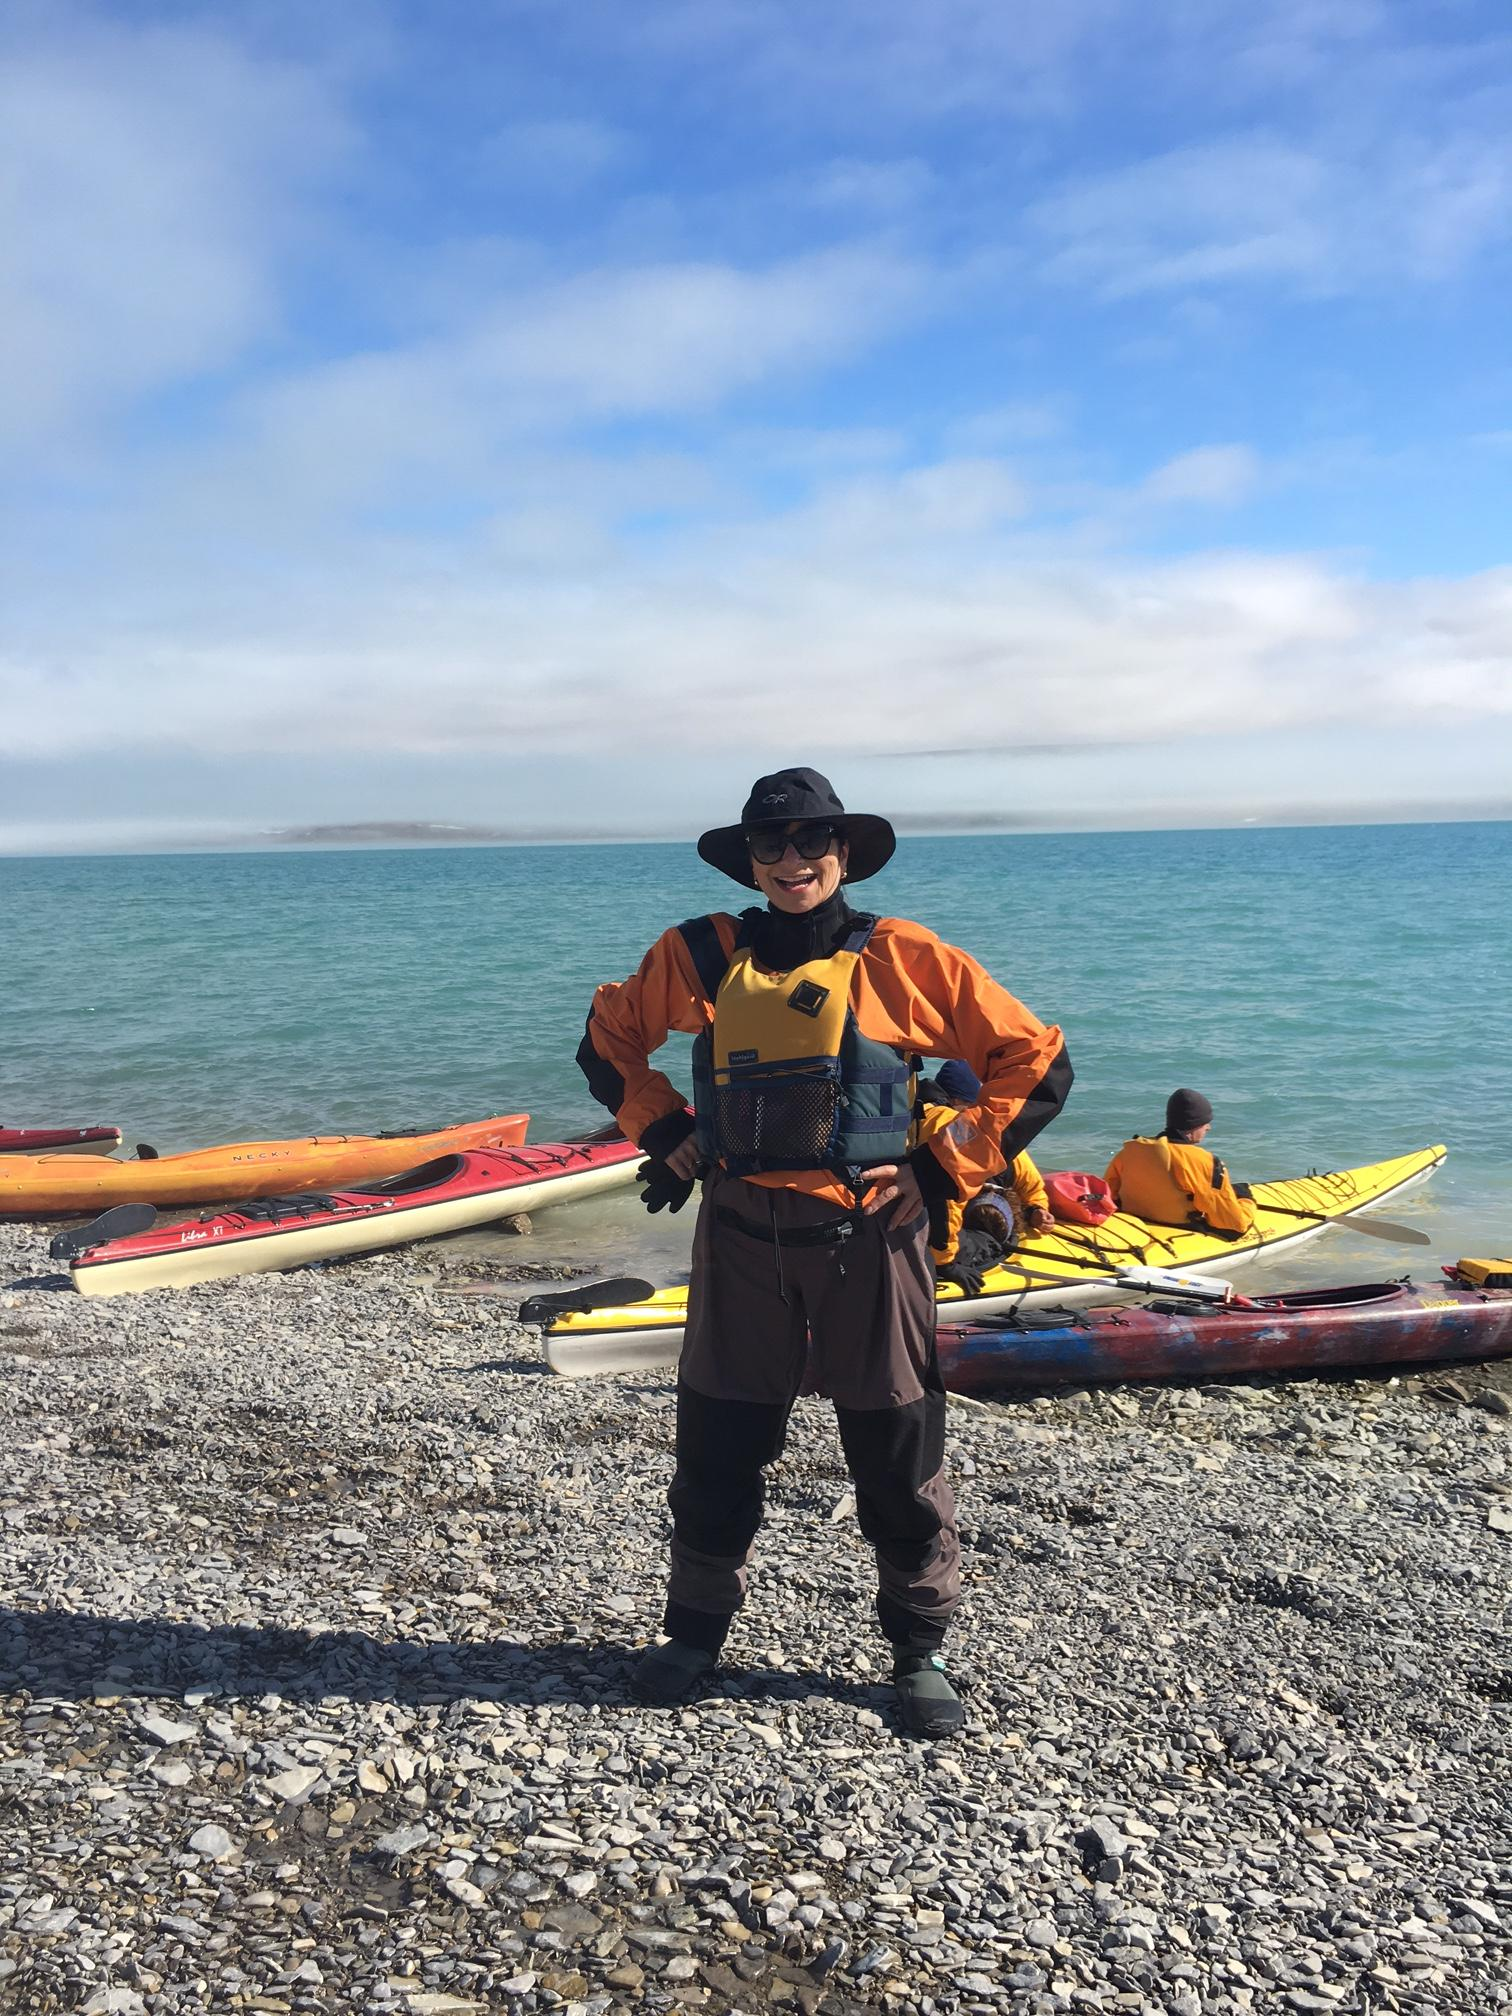 Jeanne Beker gears up to go sea kayaking at Arctic Watch Wilderness Lodge